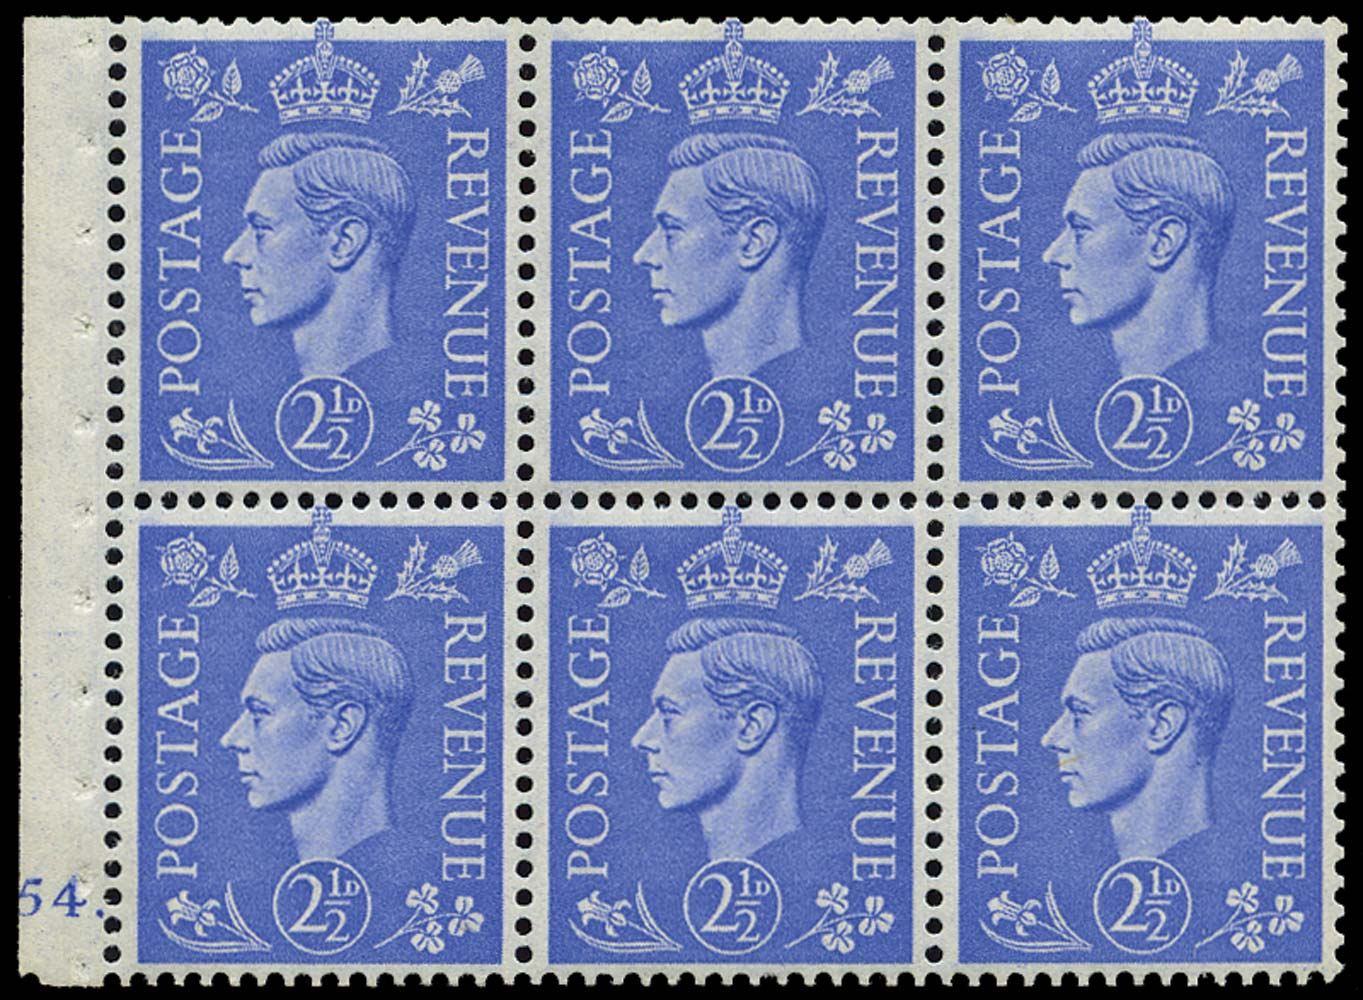 GB 1942  SG489f Booklet pane - Cylinder J54. (dot)